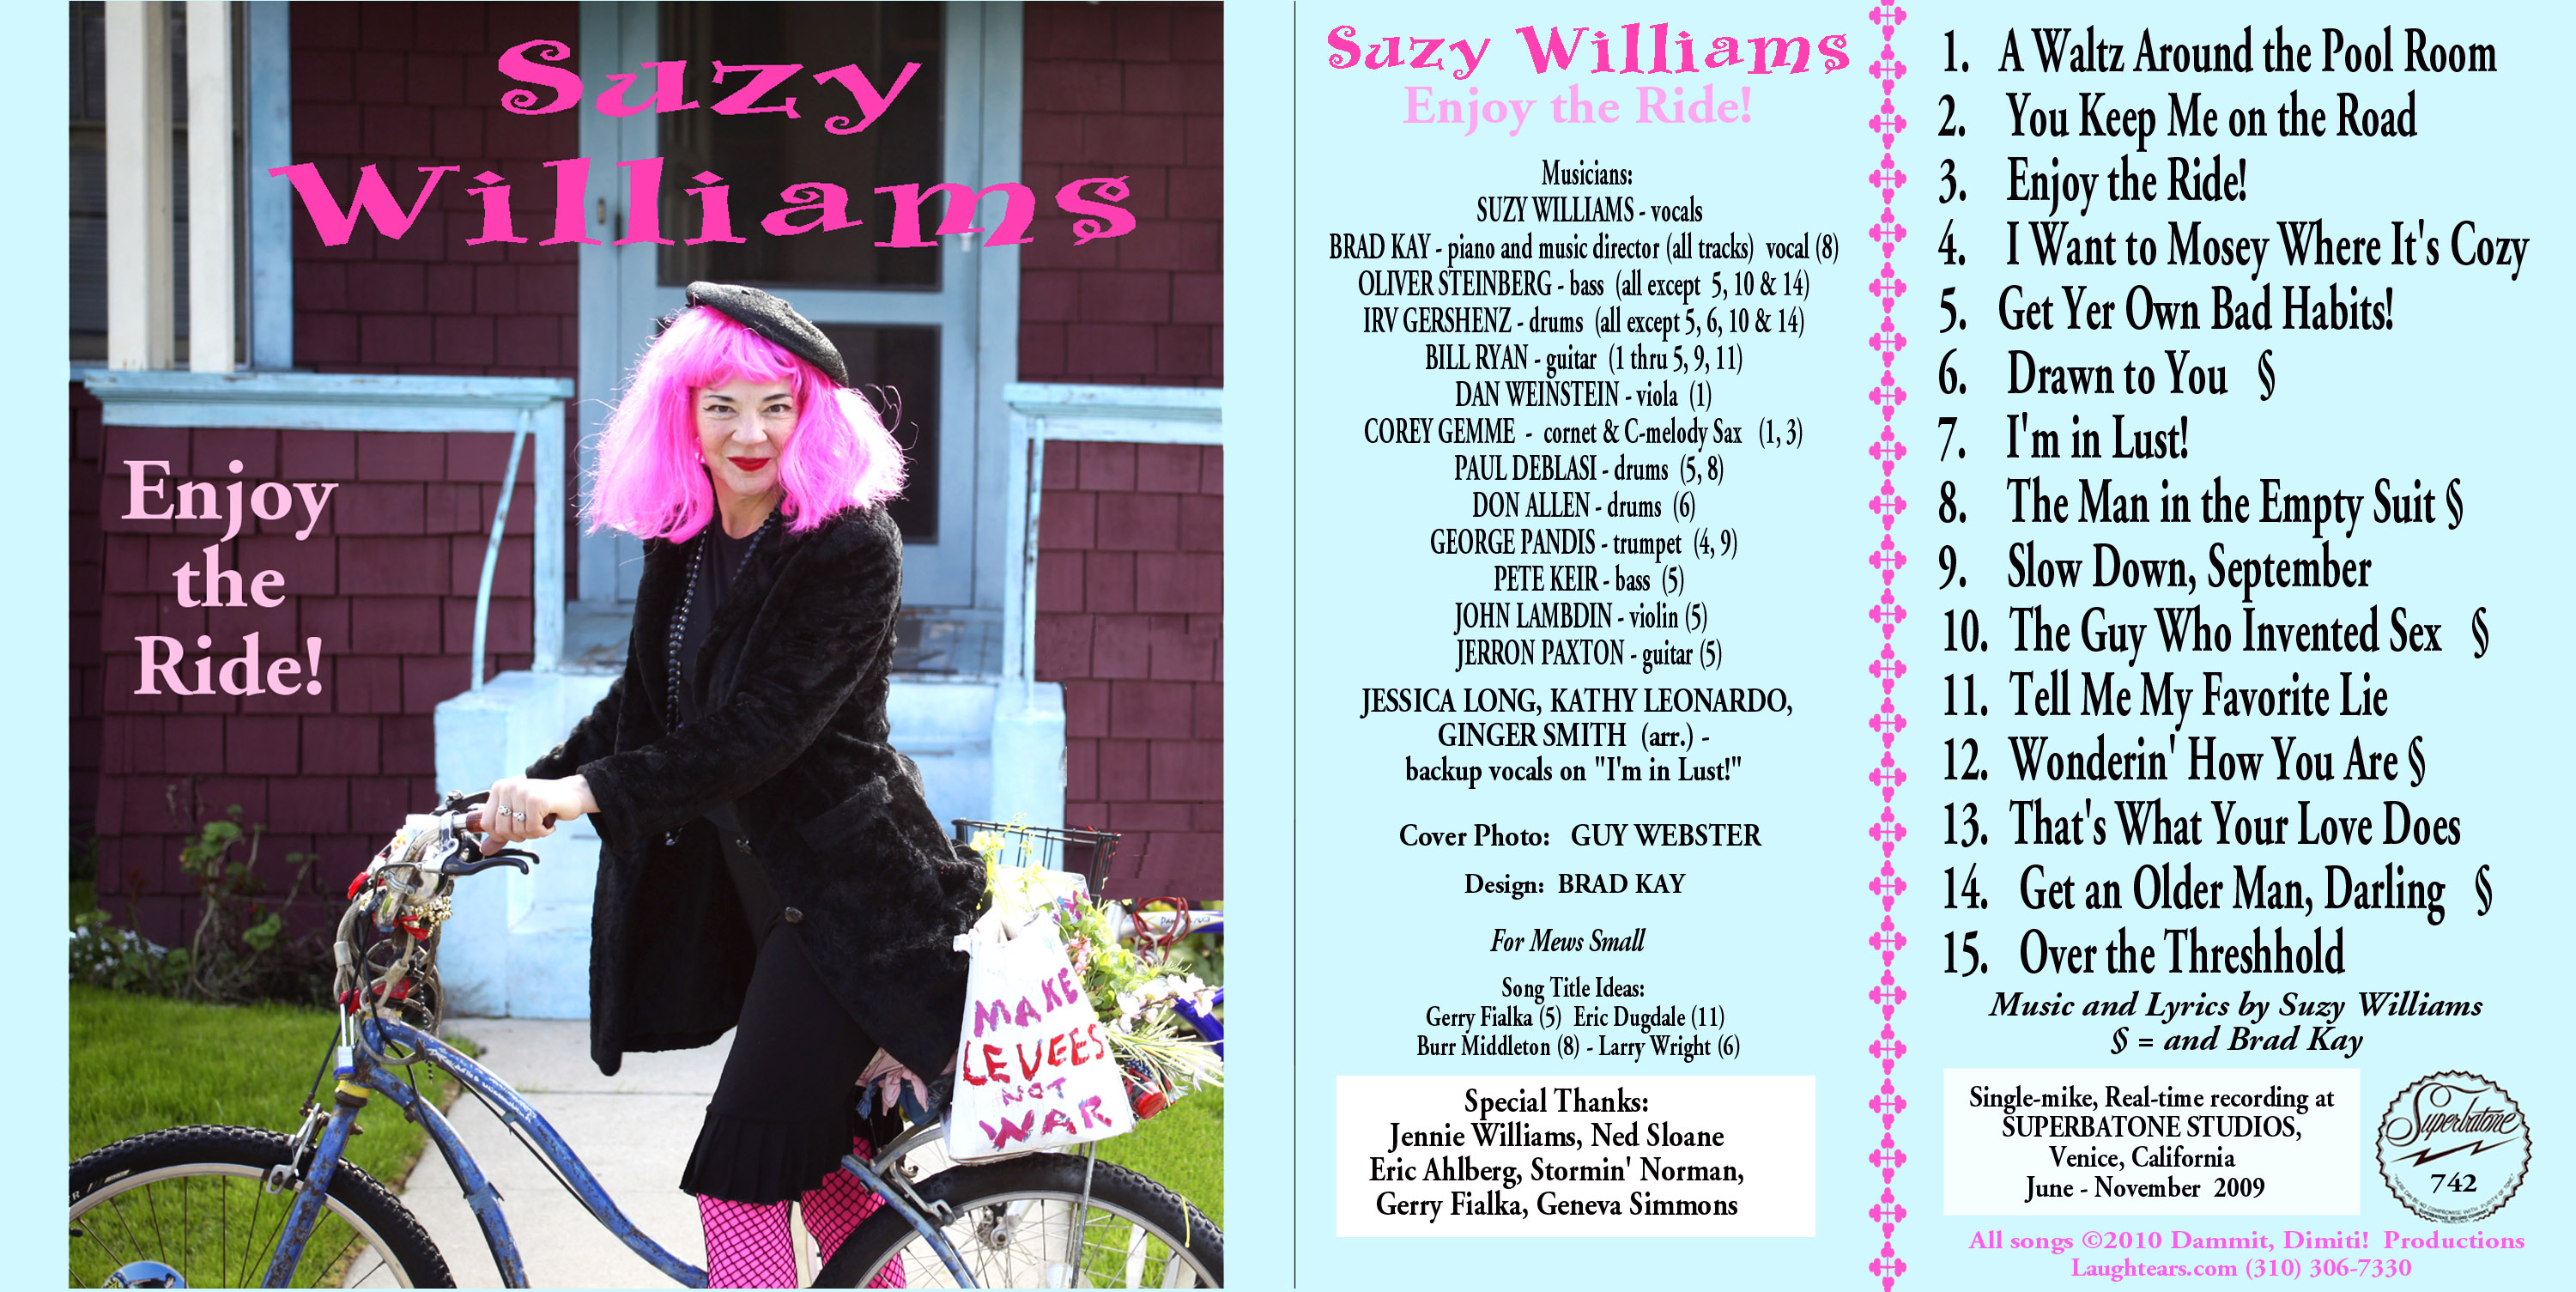 Suzy Williams: Enjoy the Ride